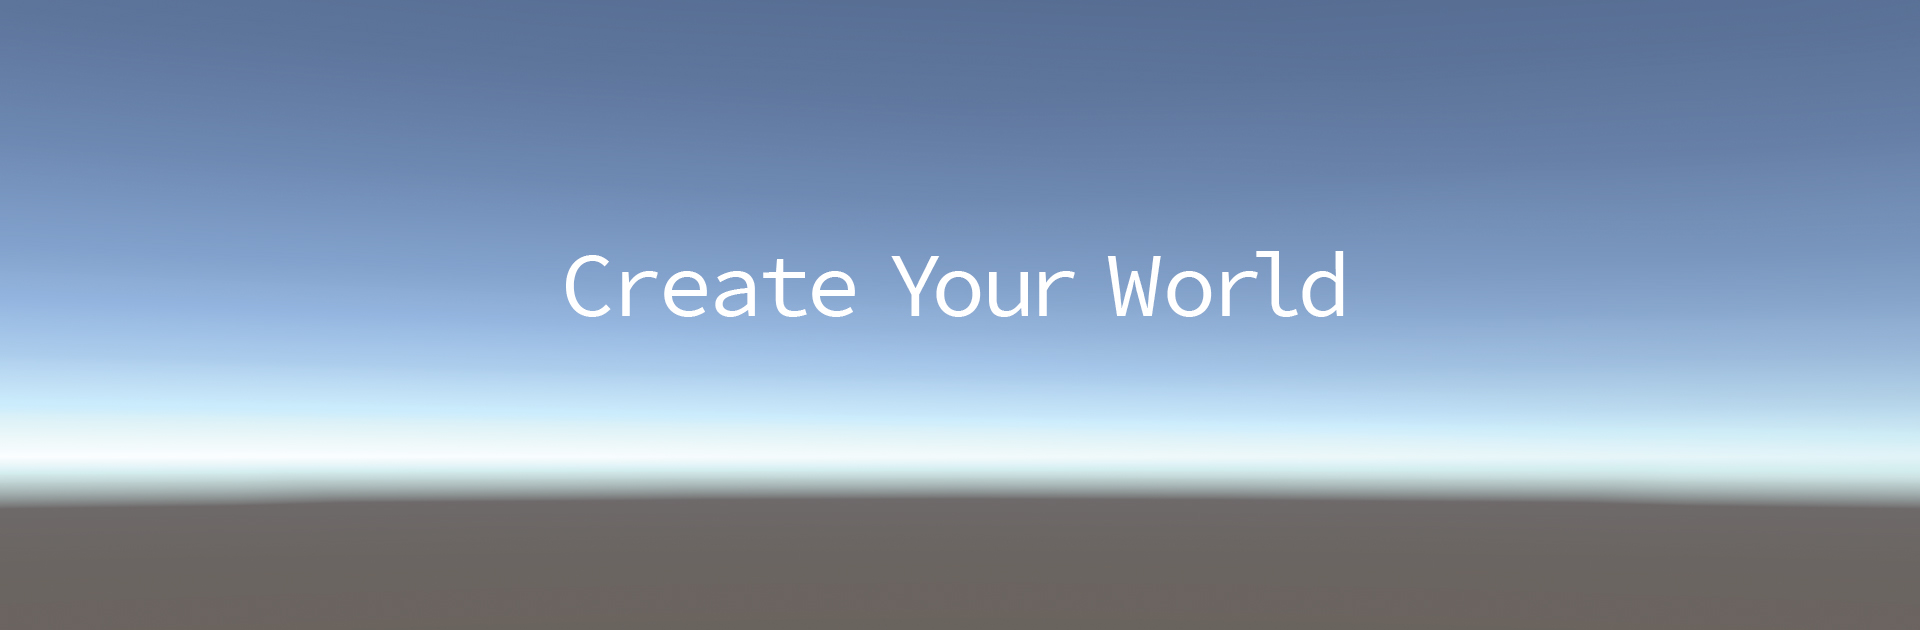 "New Recruitment  Ad Campaign ""Create Your World"""